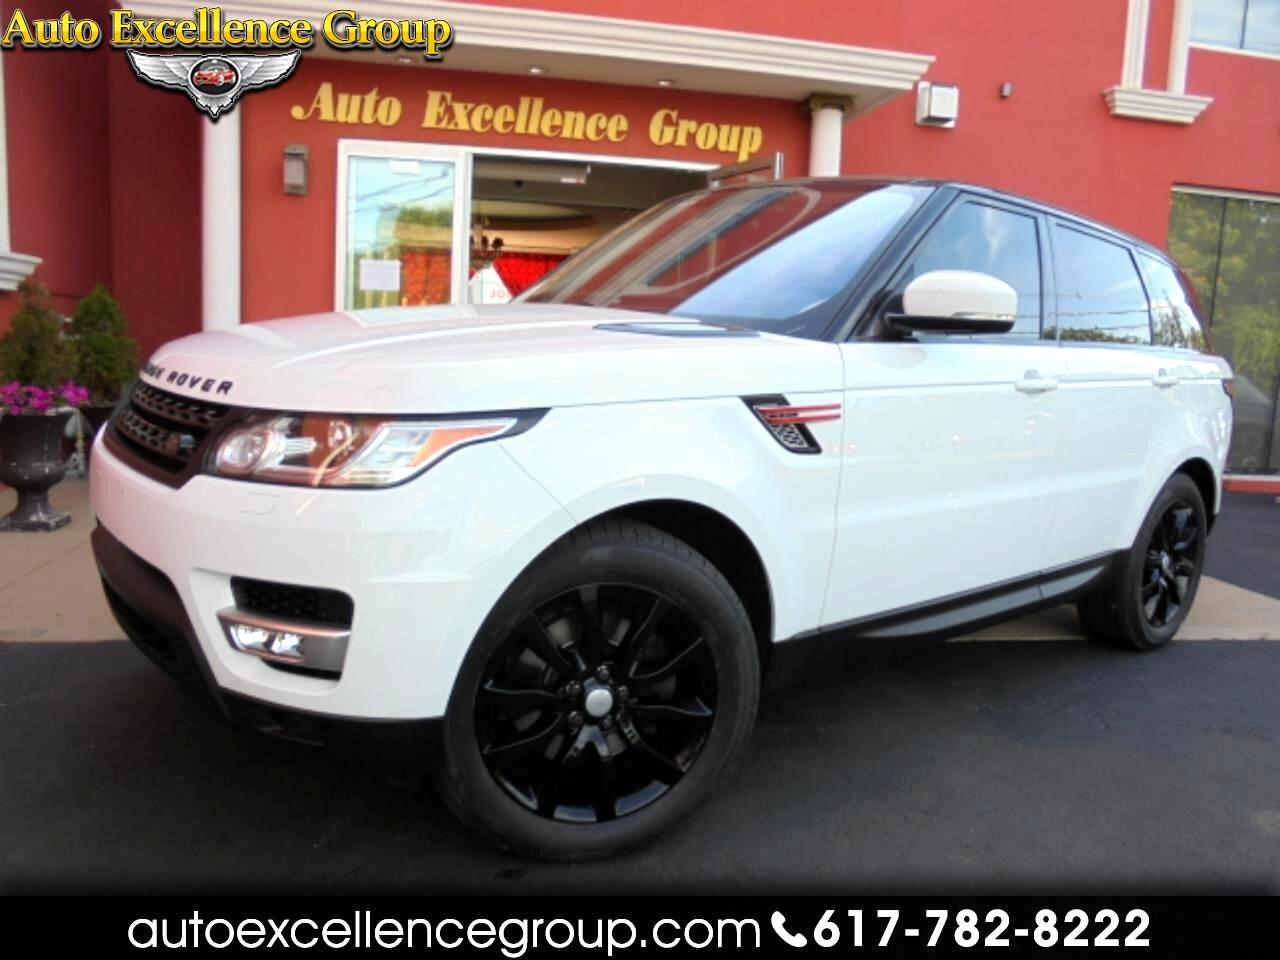 used 2016 land rover range rover sport hse for sale in boston ma 01906 auto excellence group auto excellence group